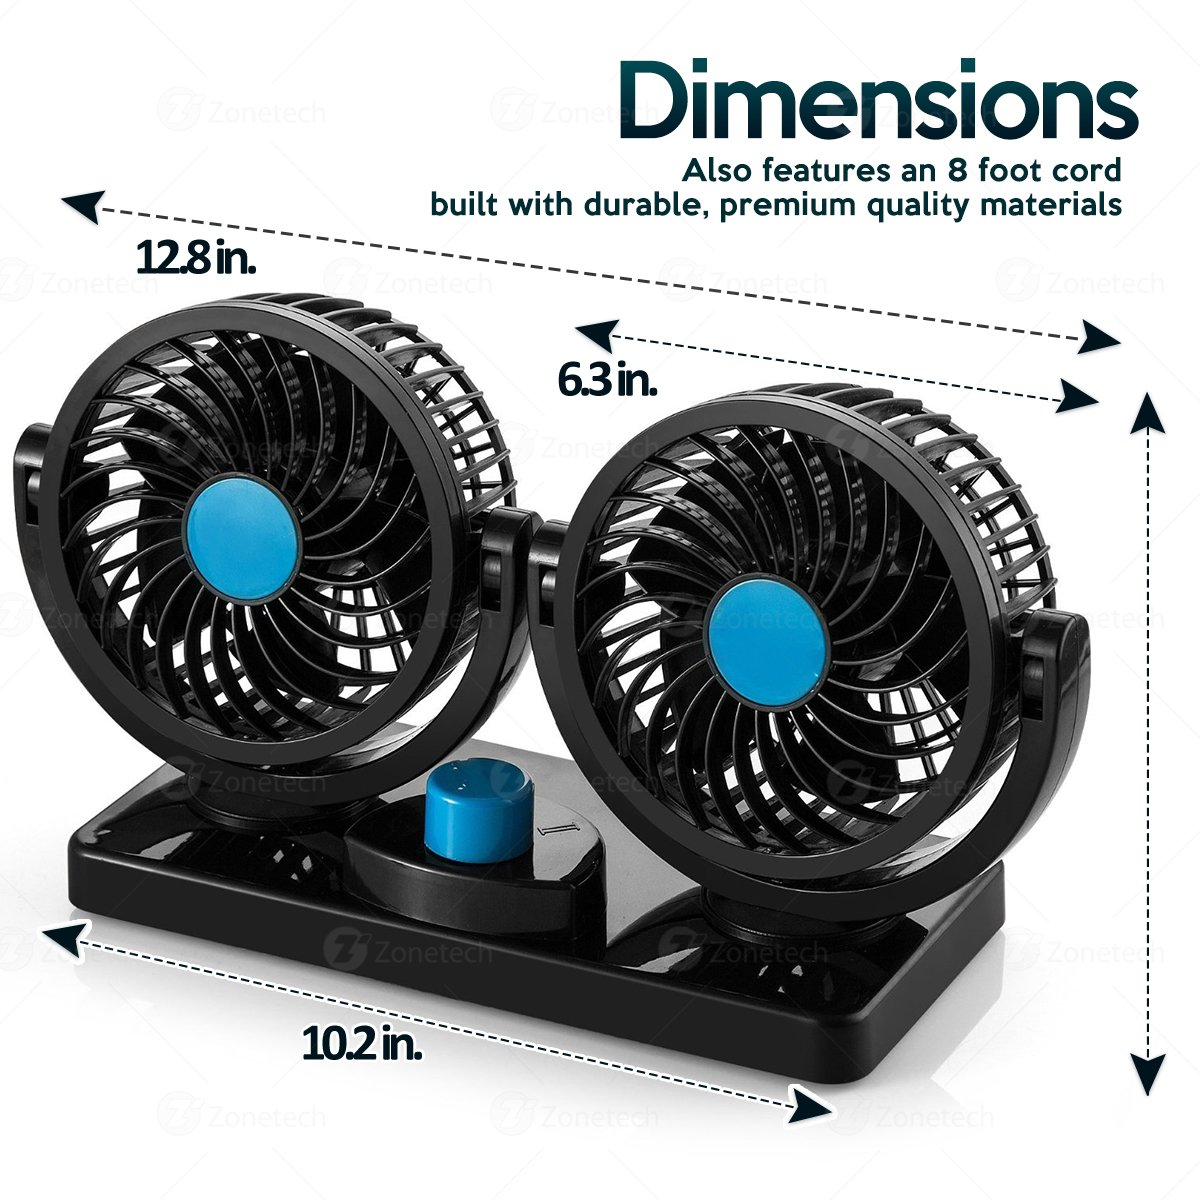 2 Speed Oscillating Summer Fan-Ventilation Adjustable Universal Powerful Fans Comfort Wheels Zonetech 12V Electrical Car Cooling Fan-Zone Tech Rotatable Dual Head